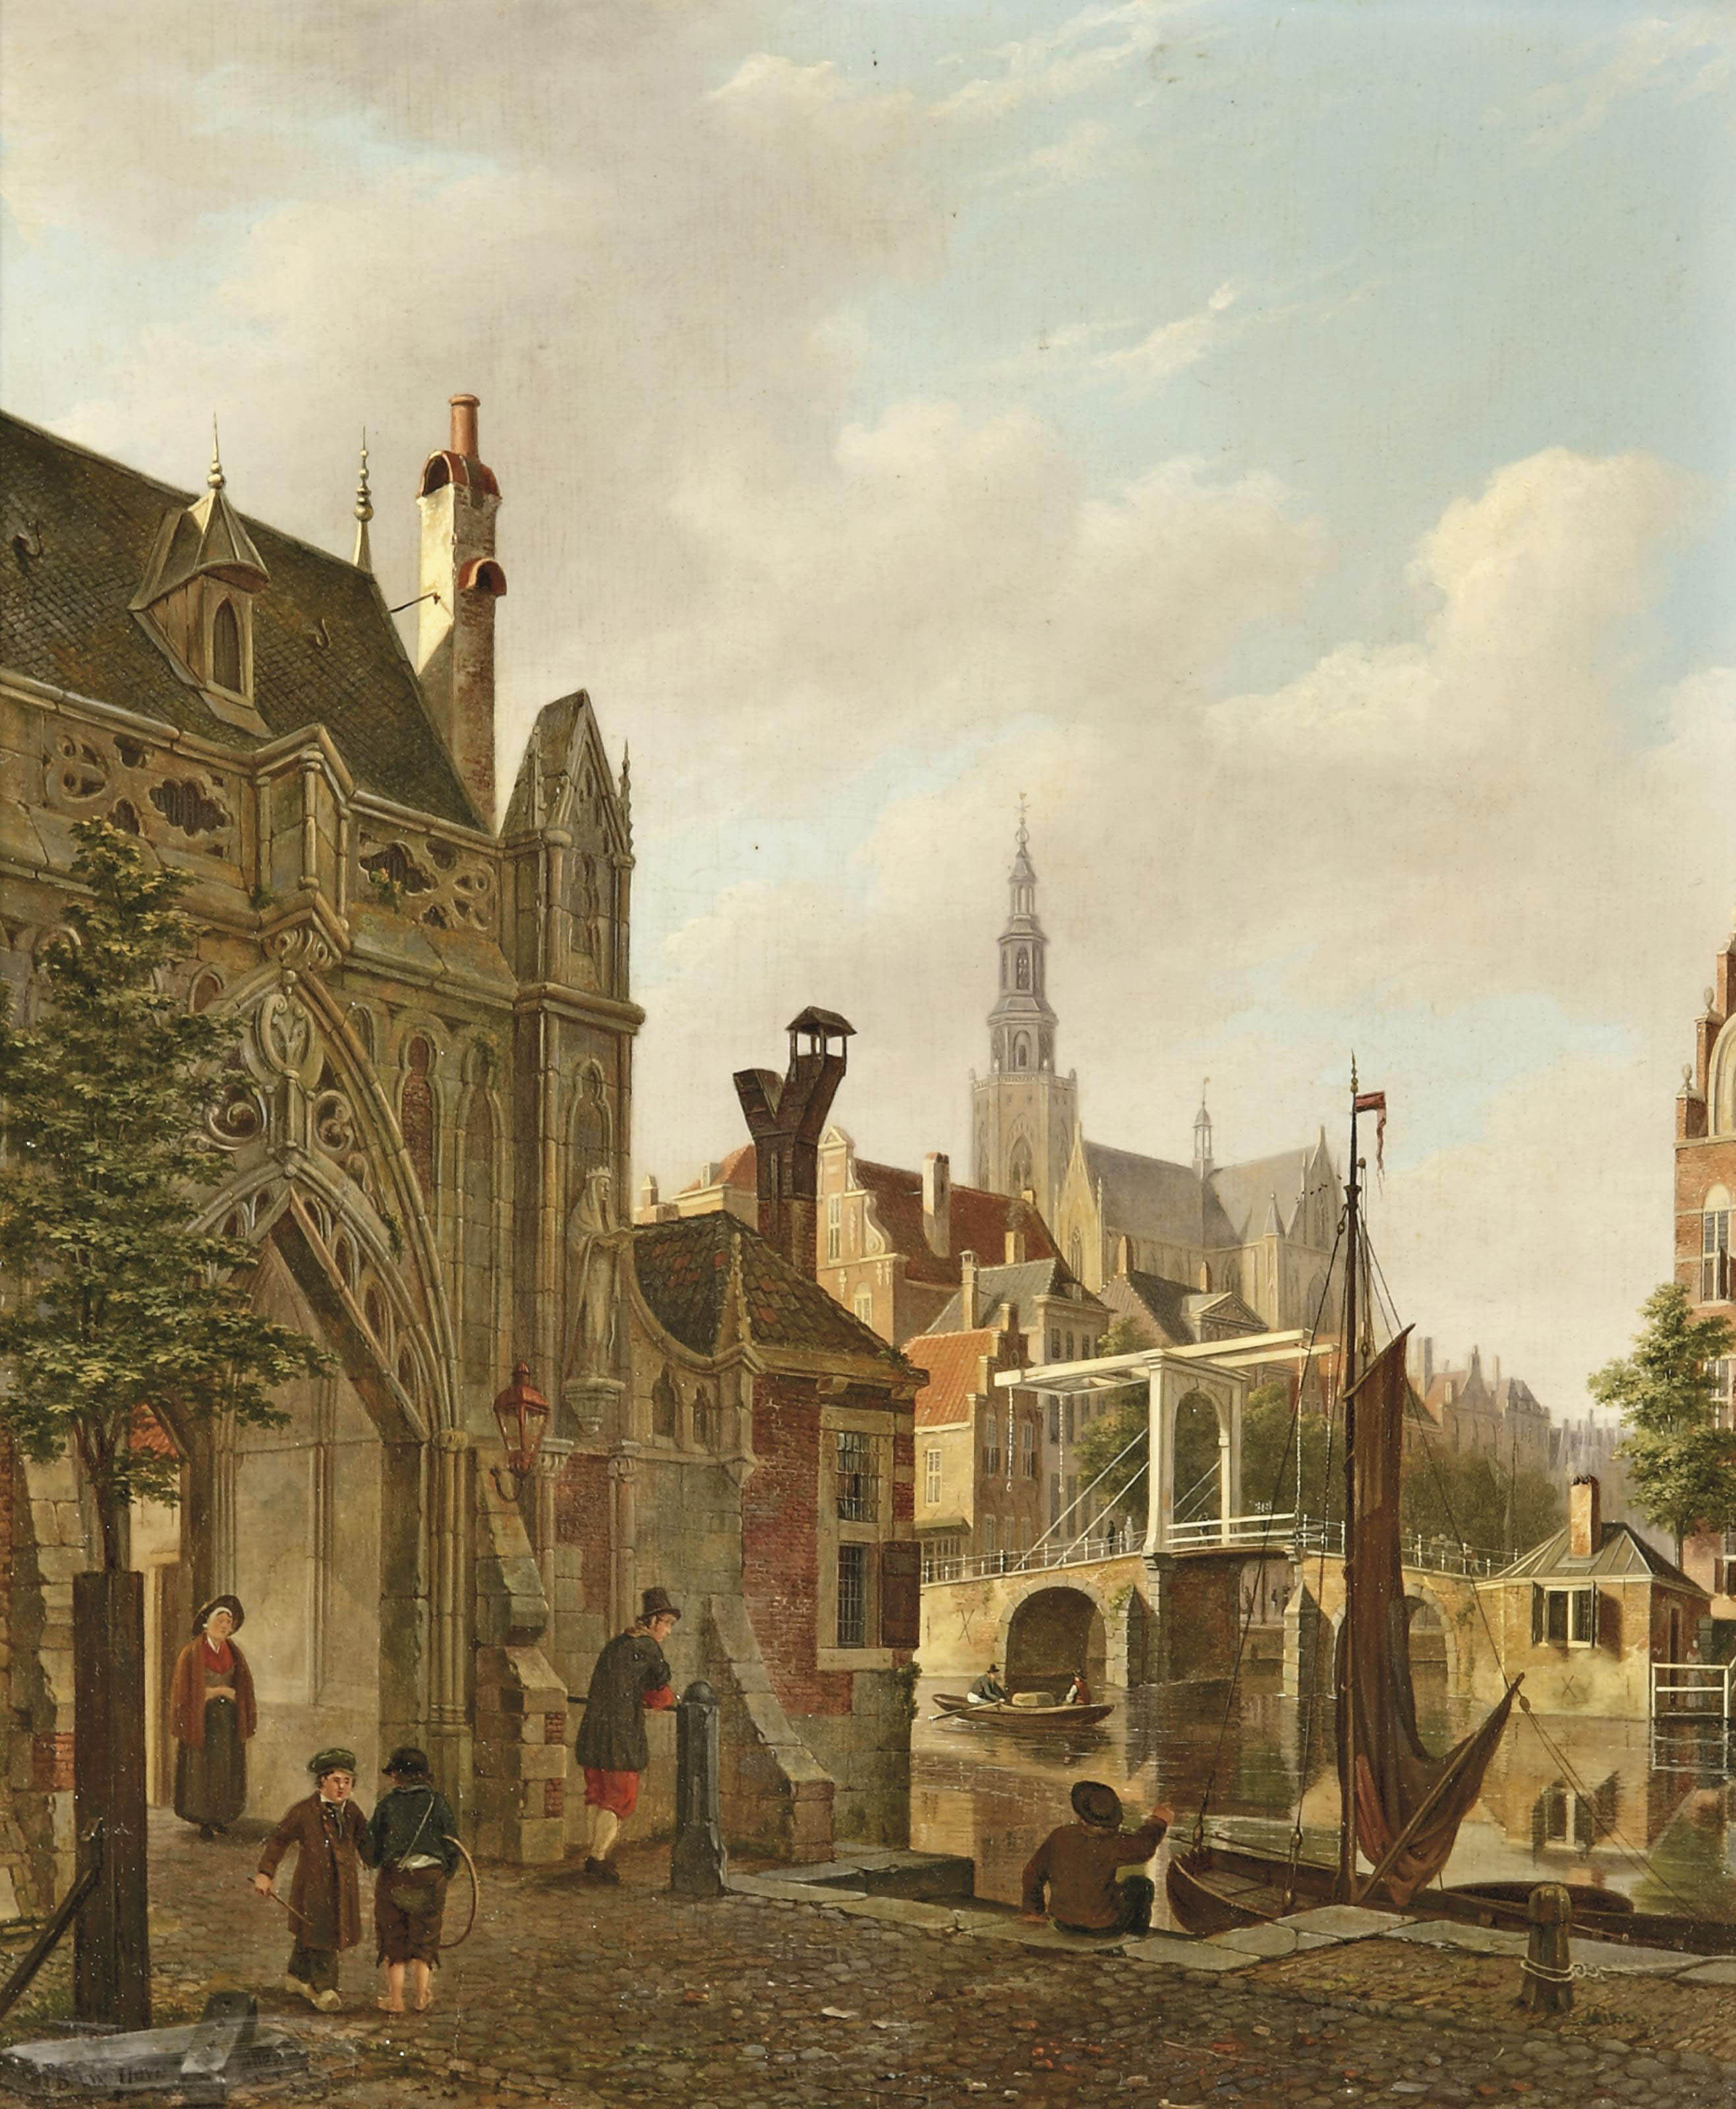 A 'capriccio' view of a Dutch town with children playing hoop